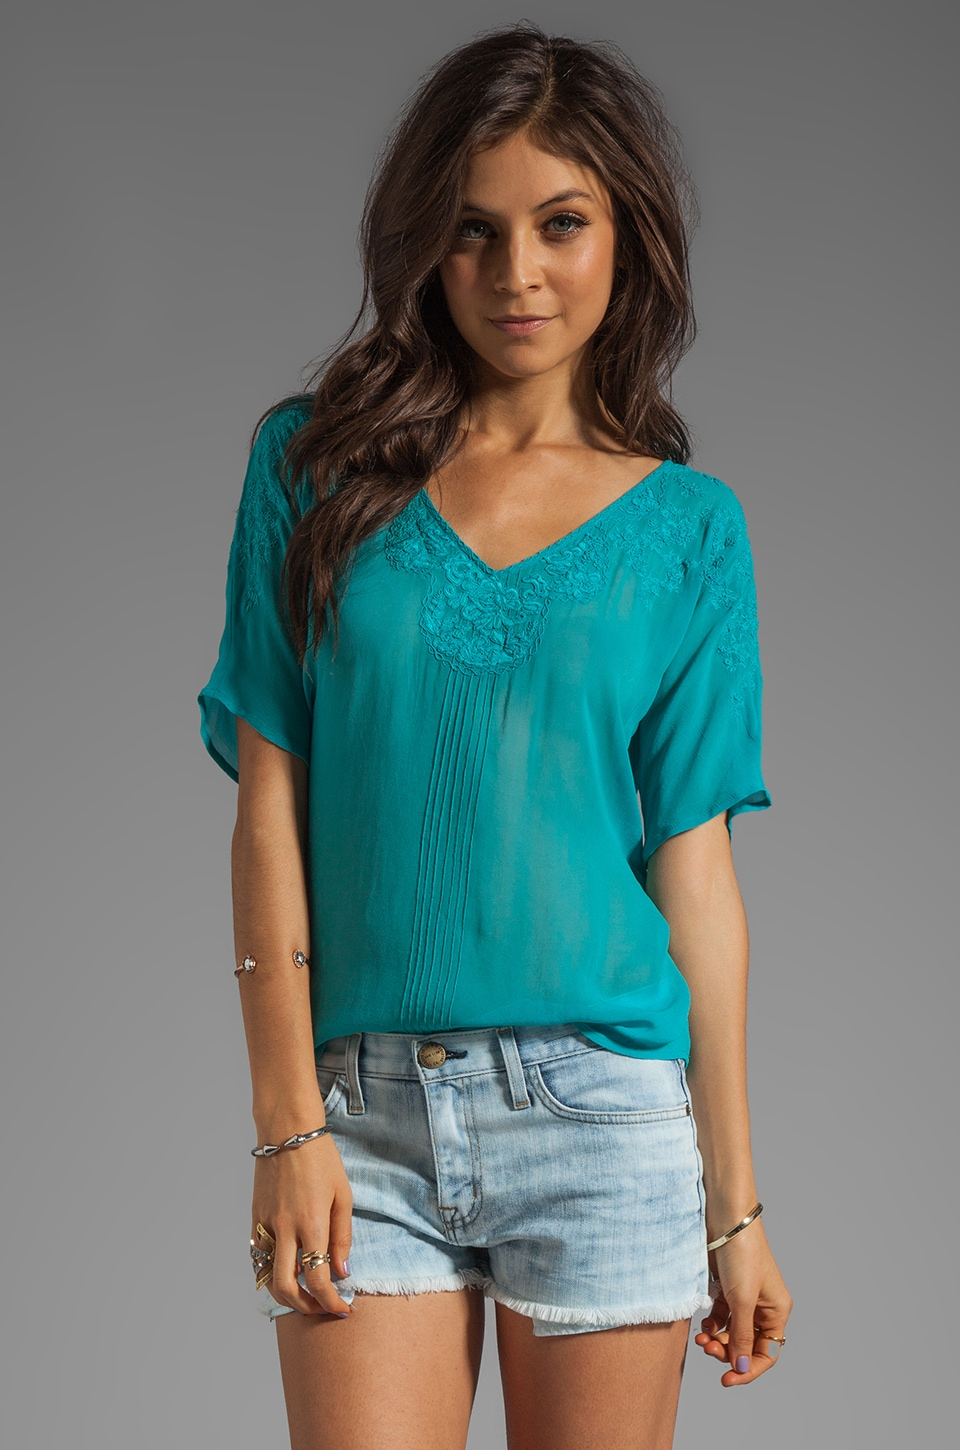 Beyond Vintage Top with Crescent Mesh Details in Turquoise